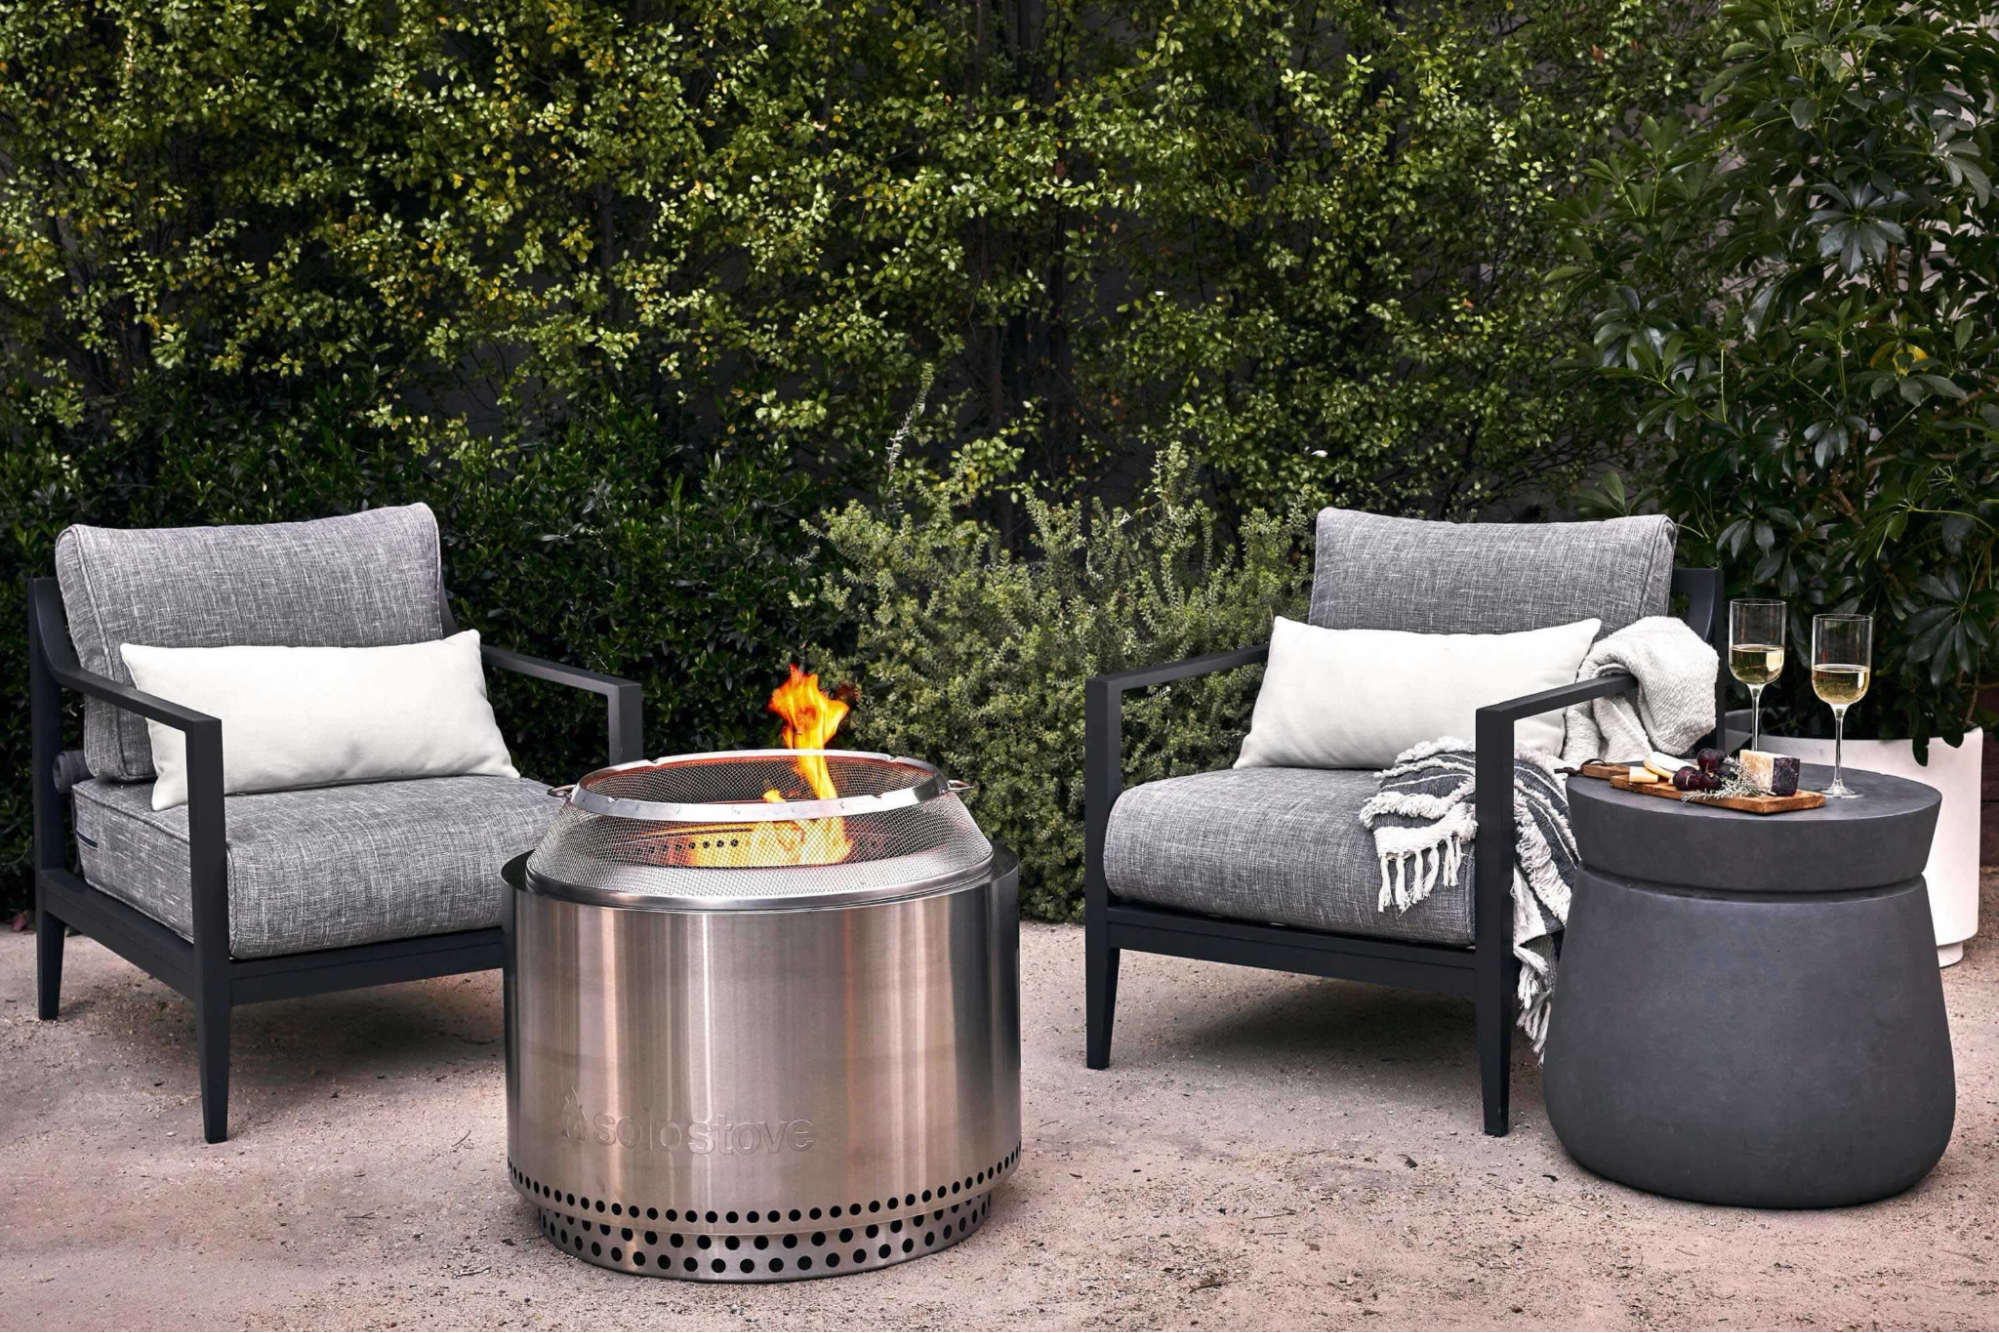 patio chairs next to a fire